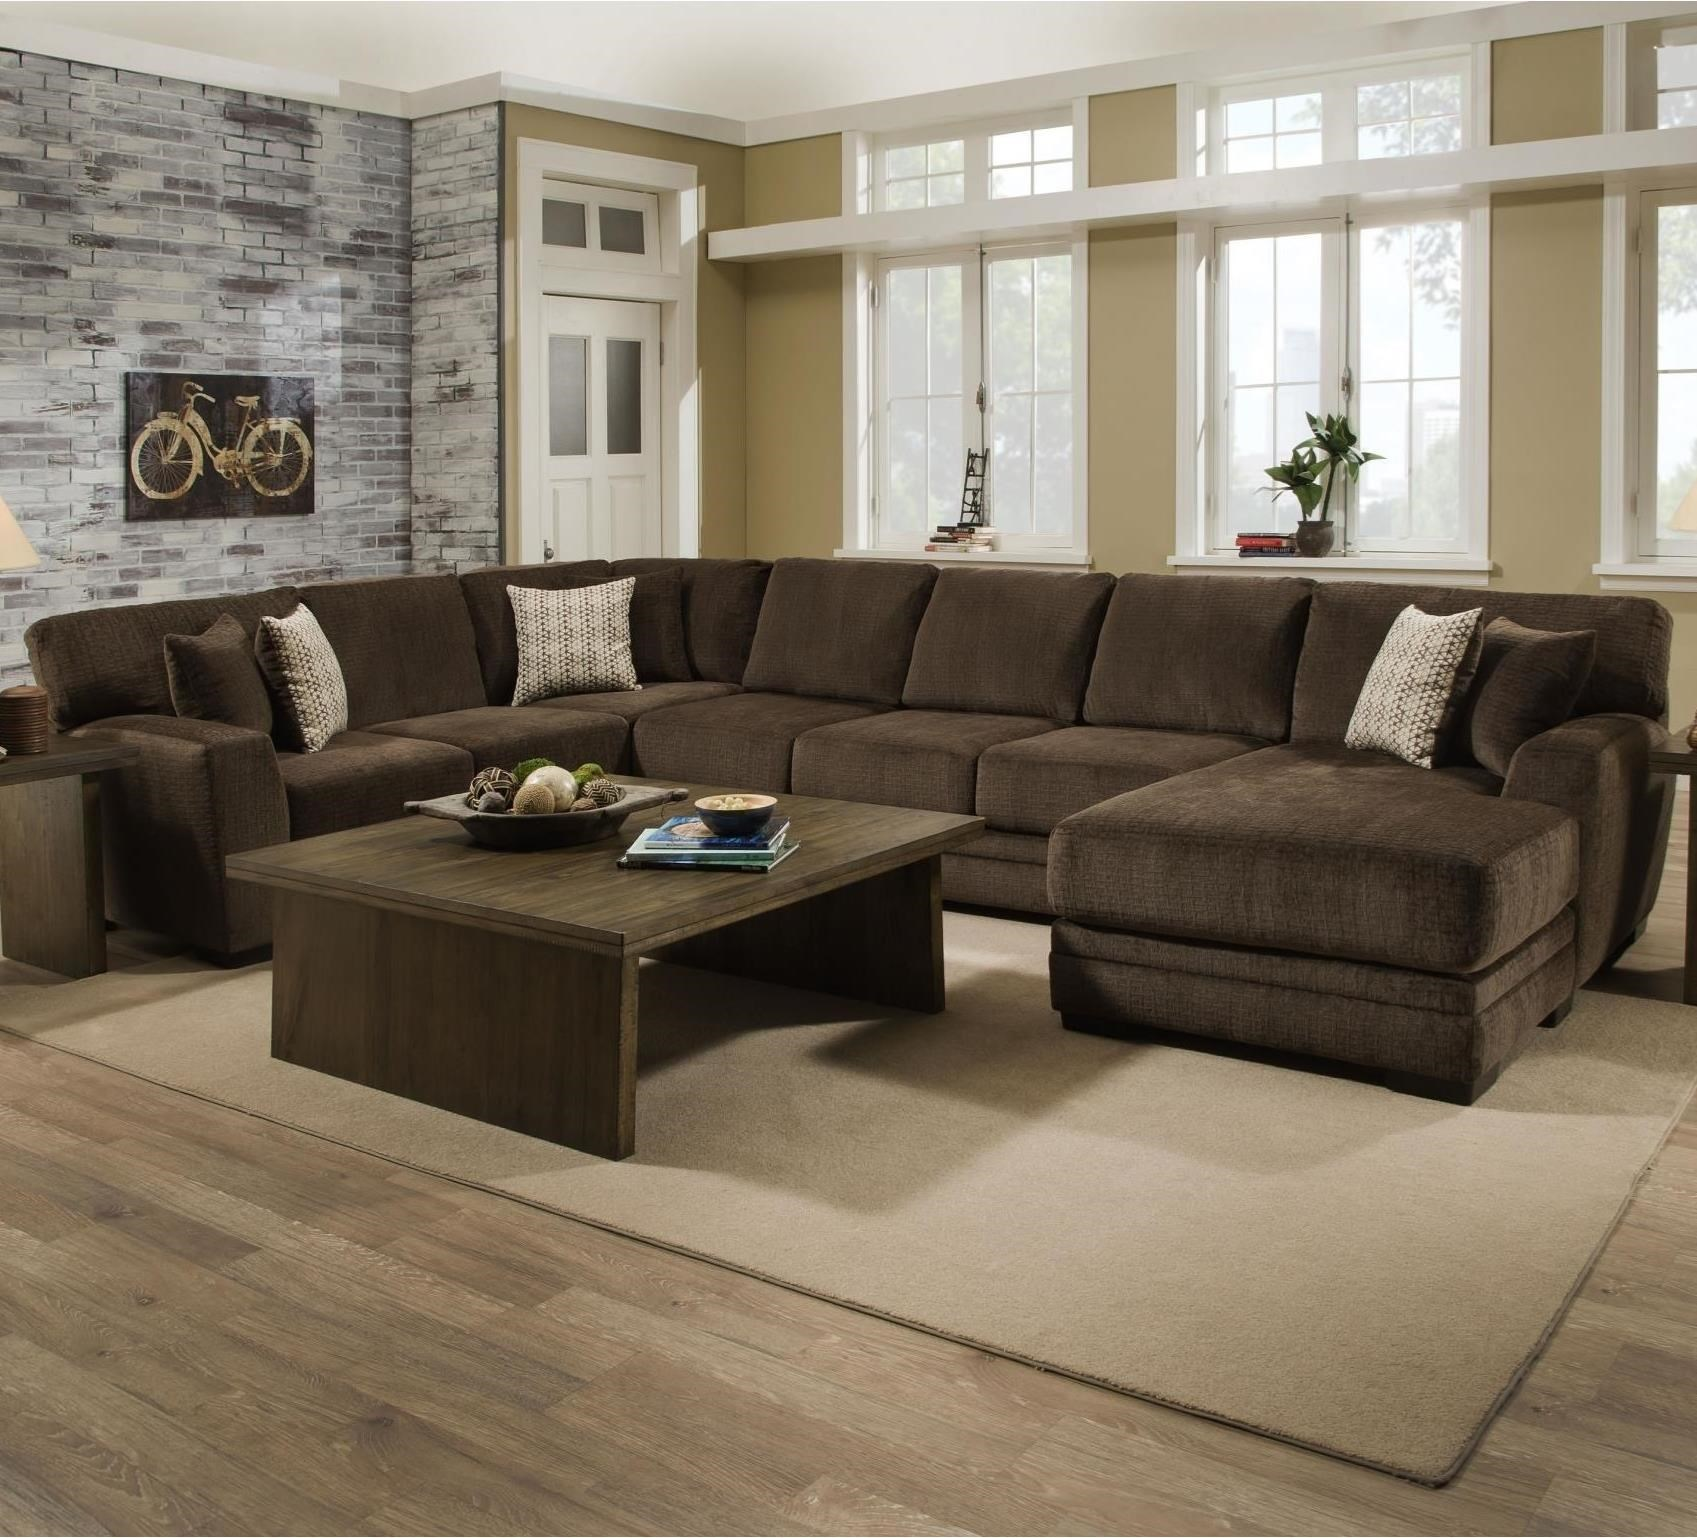 8642 transitional sectional sofa with chaise by albany antique bed essence grp 8645 2